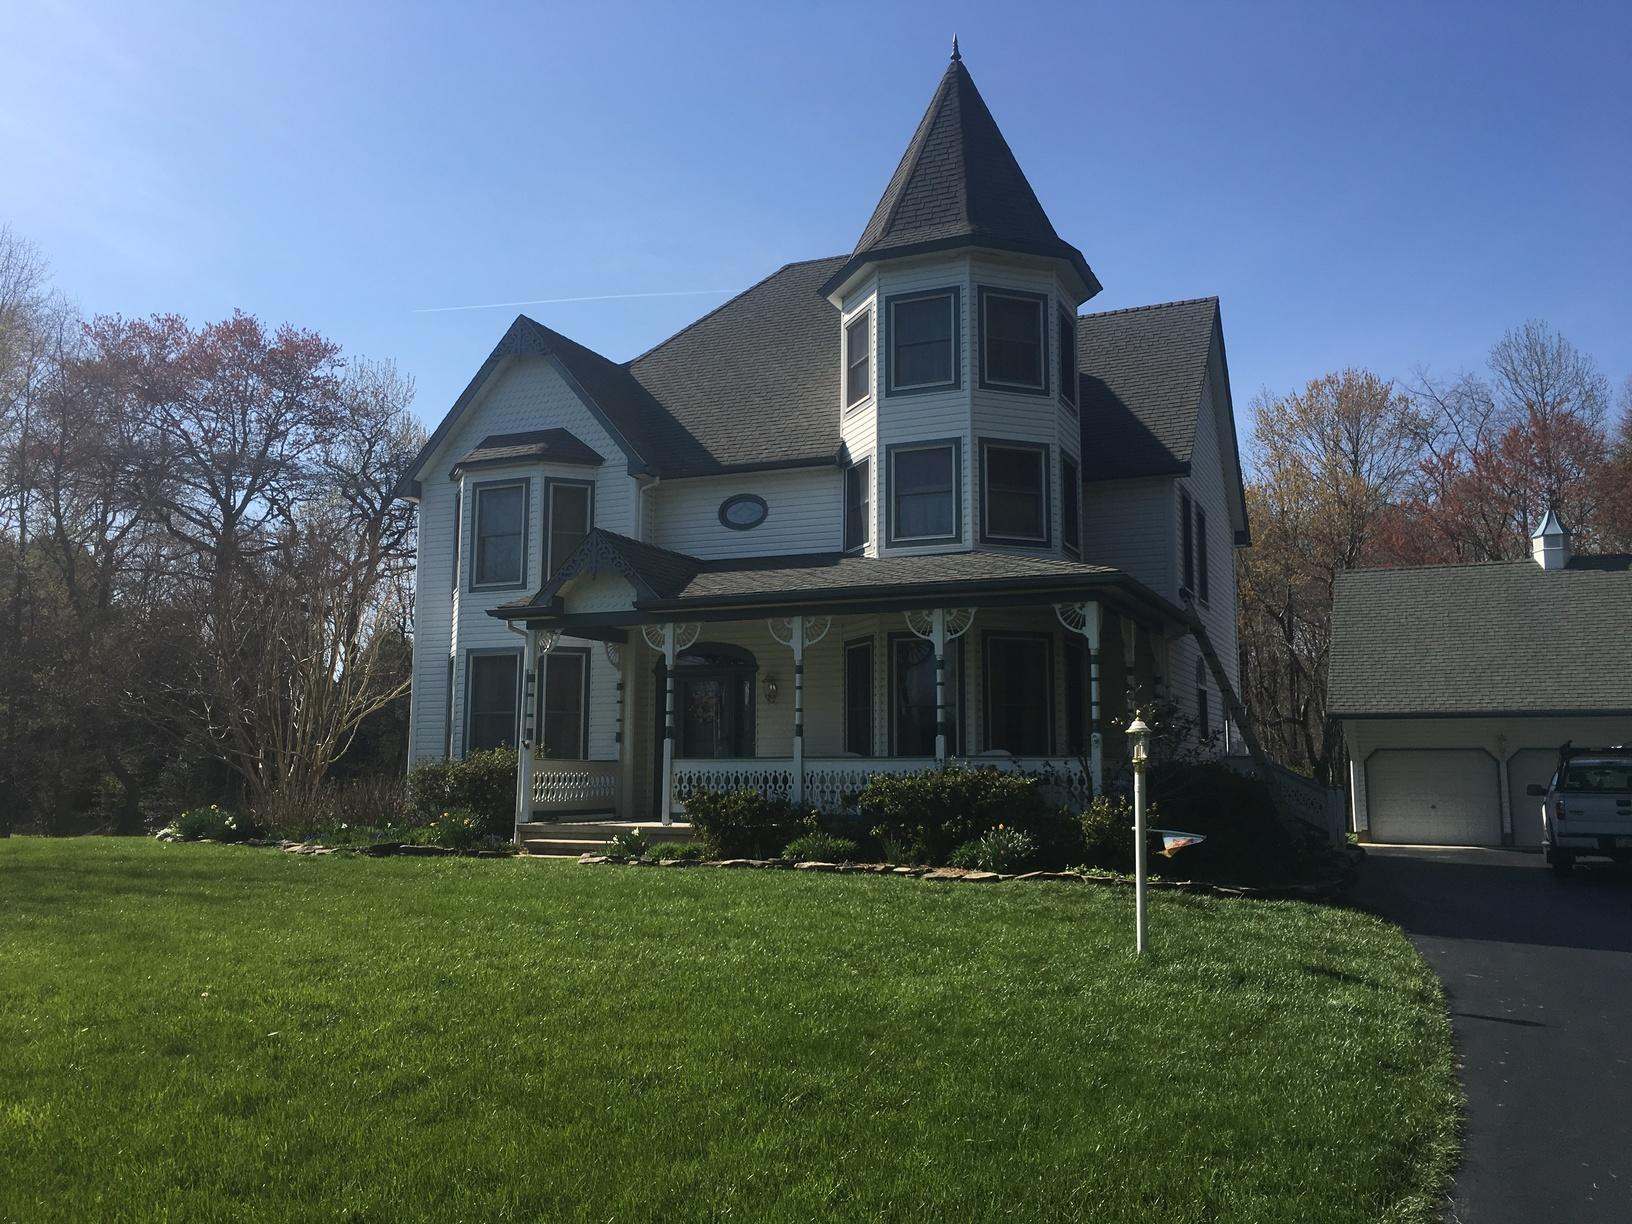 Owens Corning Duration Shingle and Slate Blue G-Tech Standing Seam Metal Roof Installation in Newark, DE - Before Photo